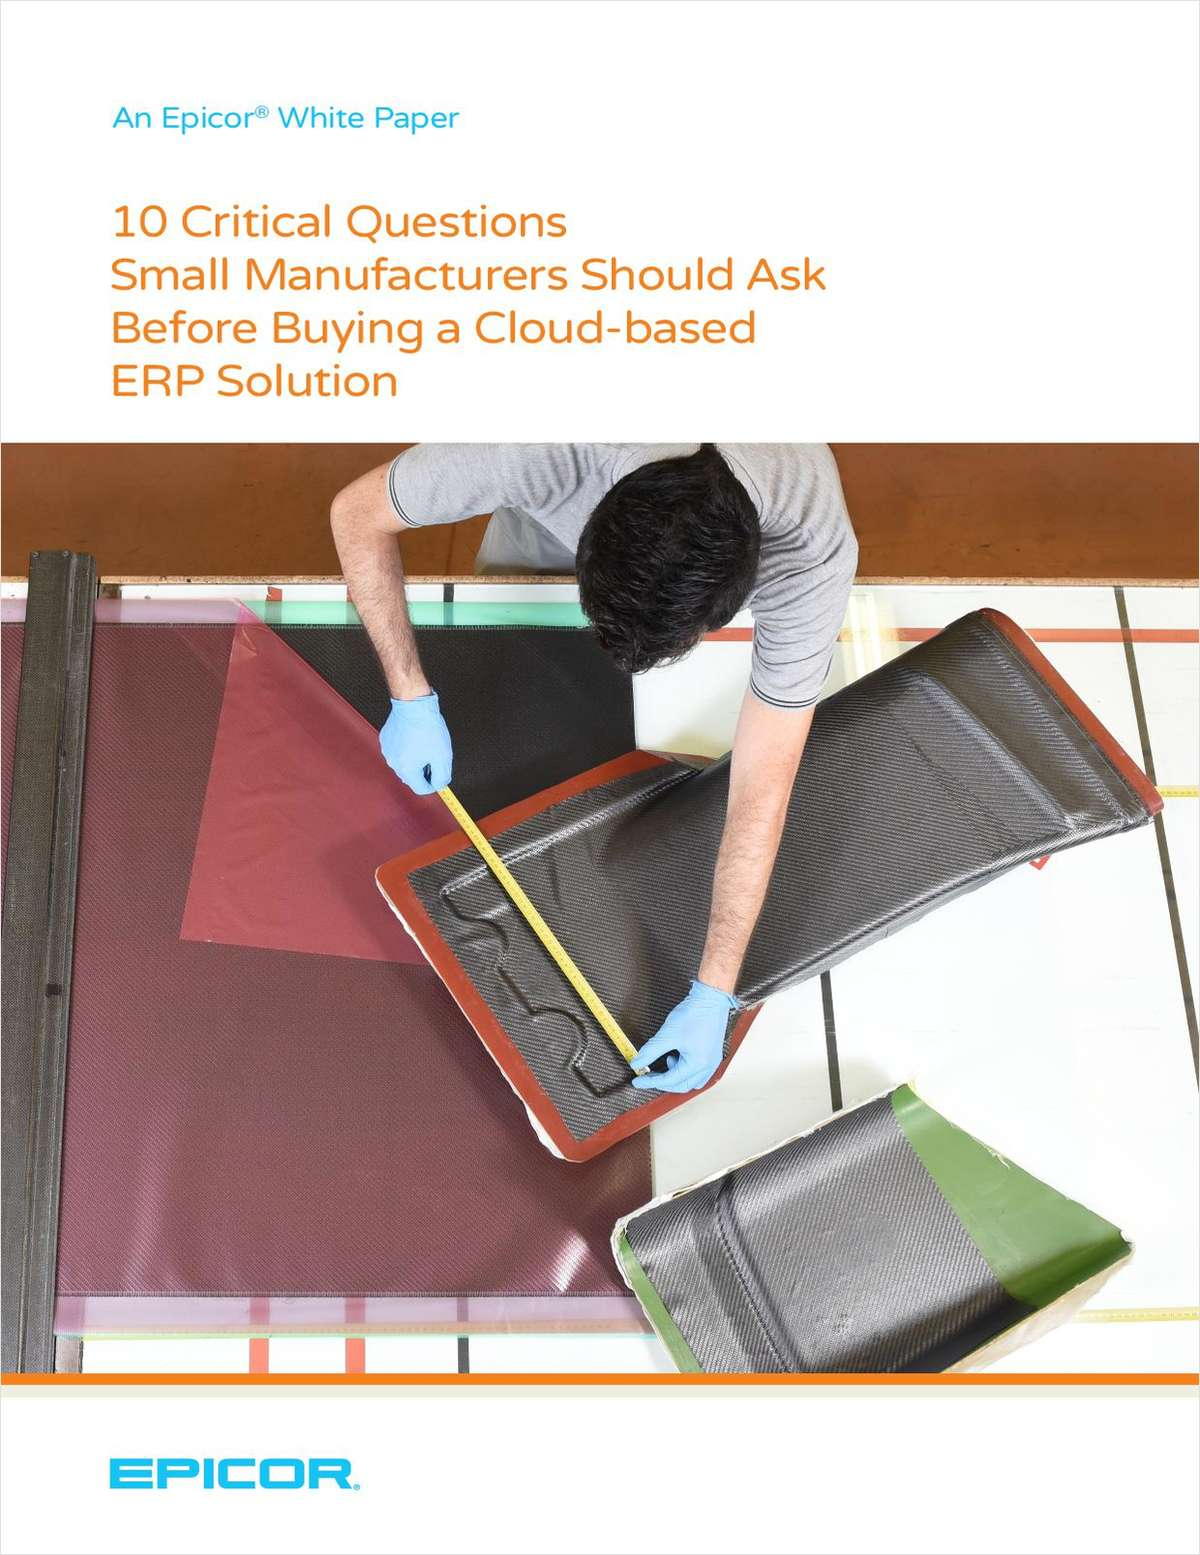 10 Critical Questions Small Manufacturers Should Ask Before Choosing a Cloud-based ERP Solution